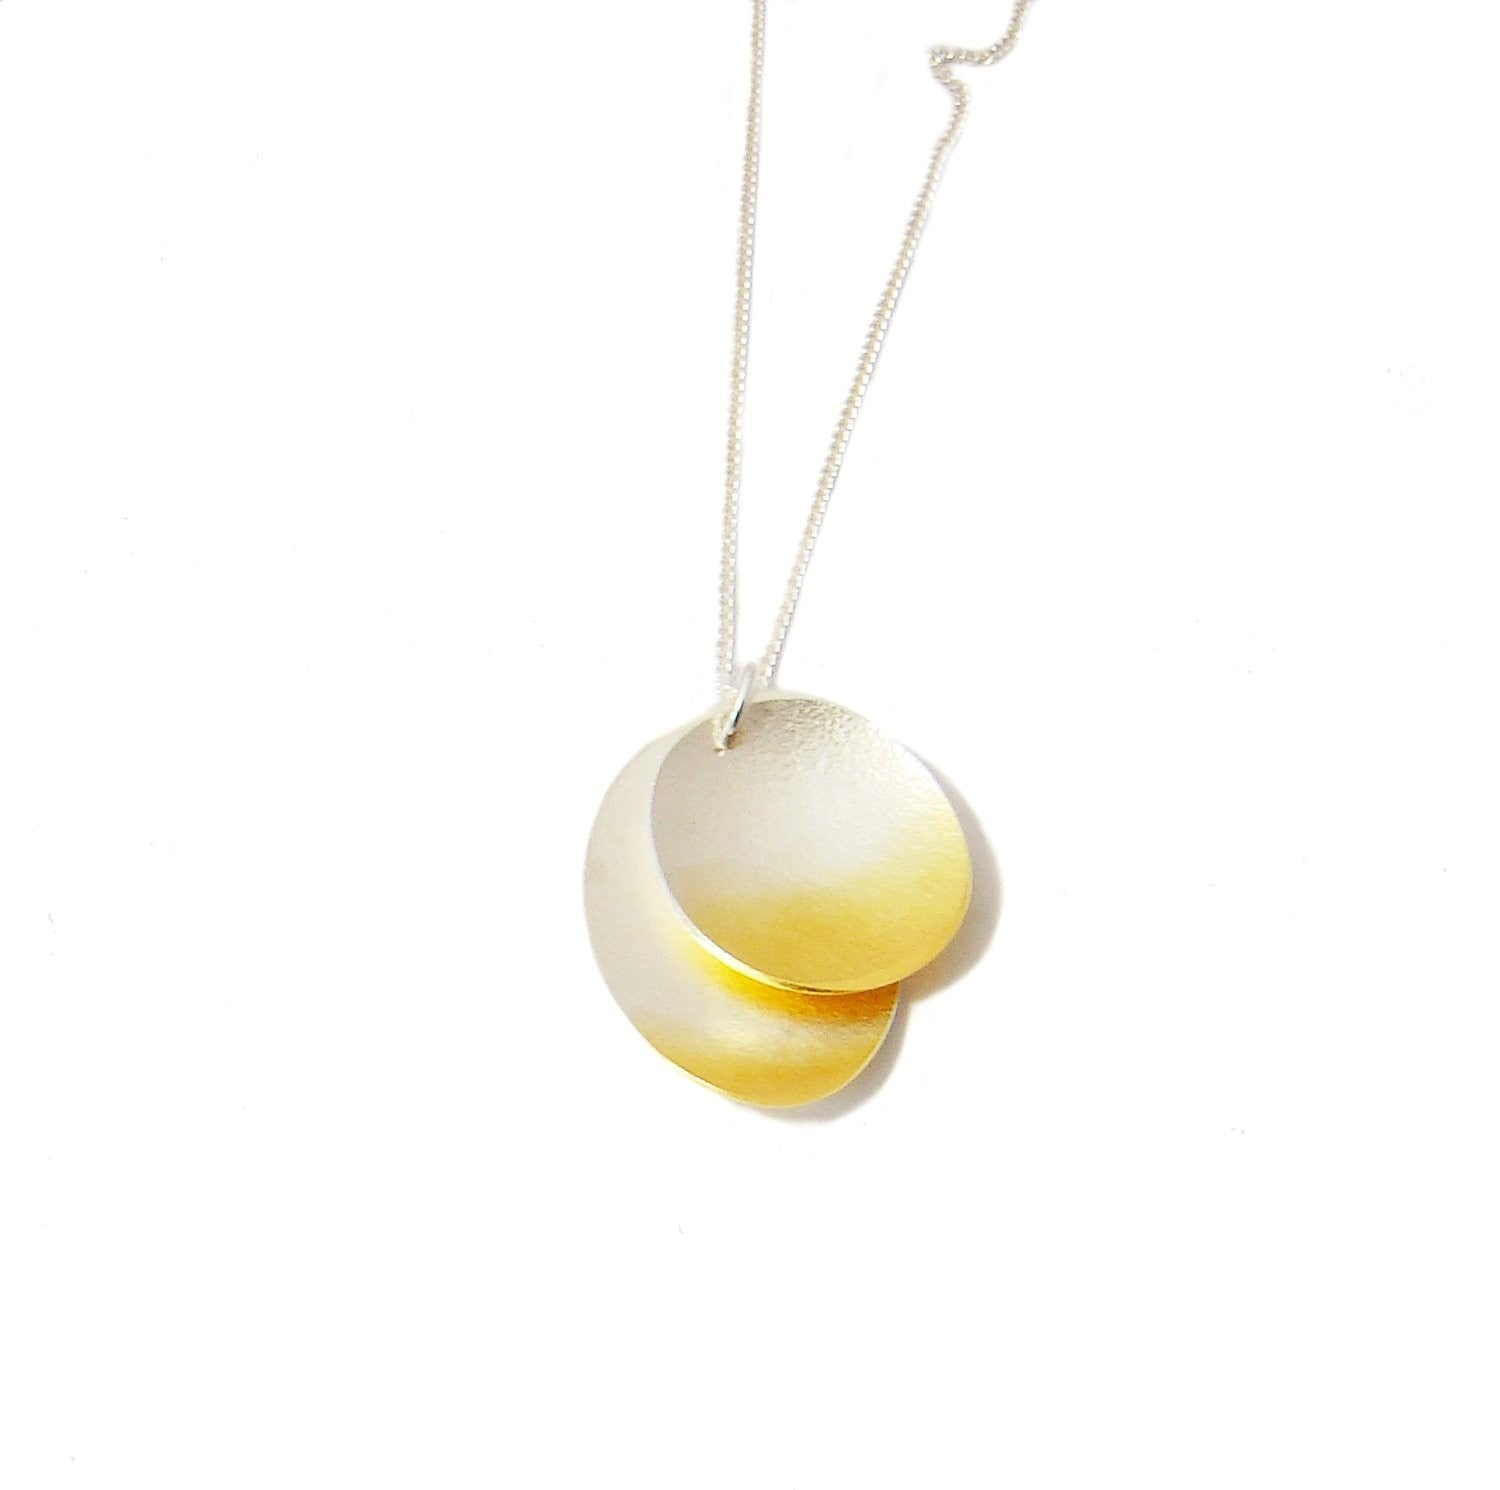 Electra Double Layer Pendant - Lireille